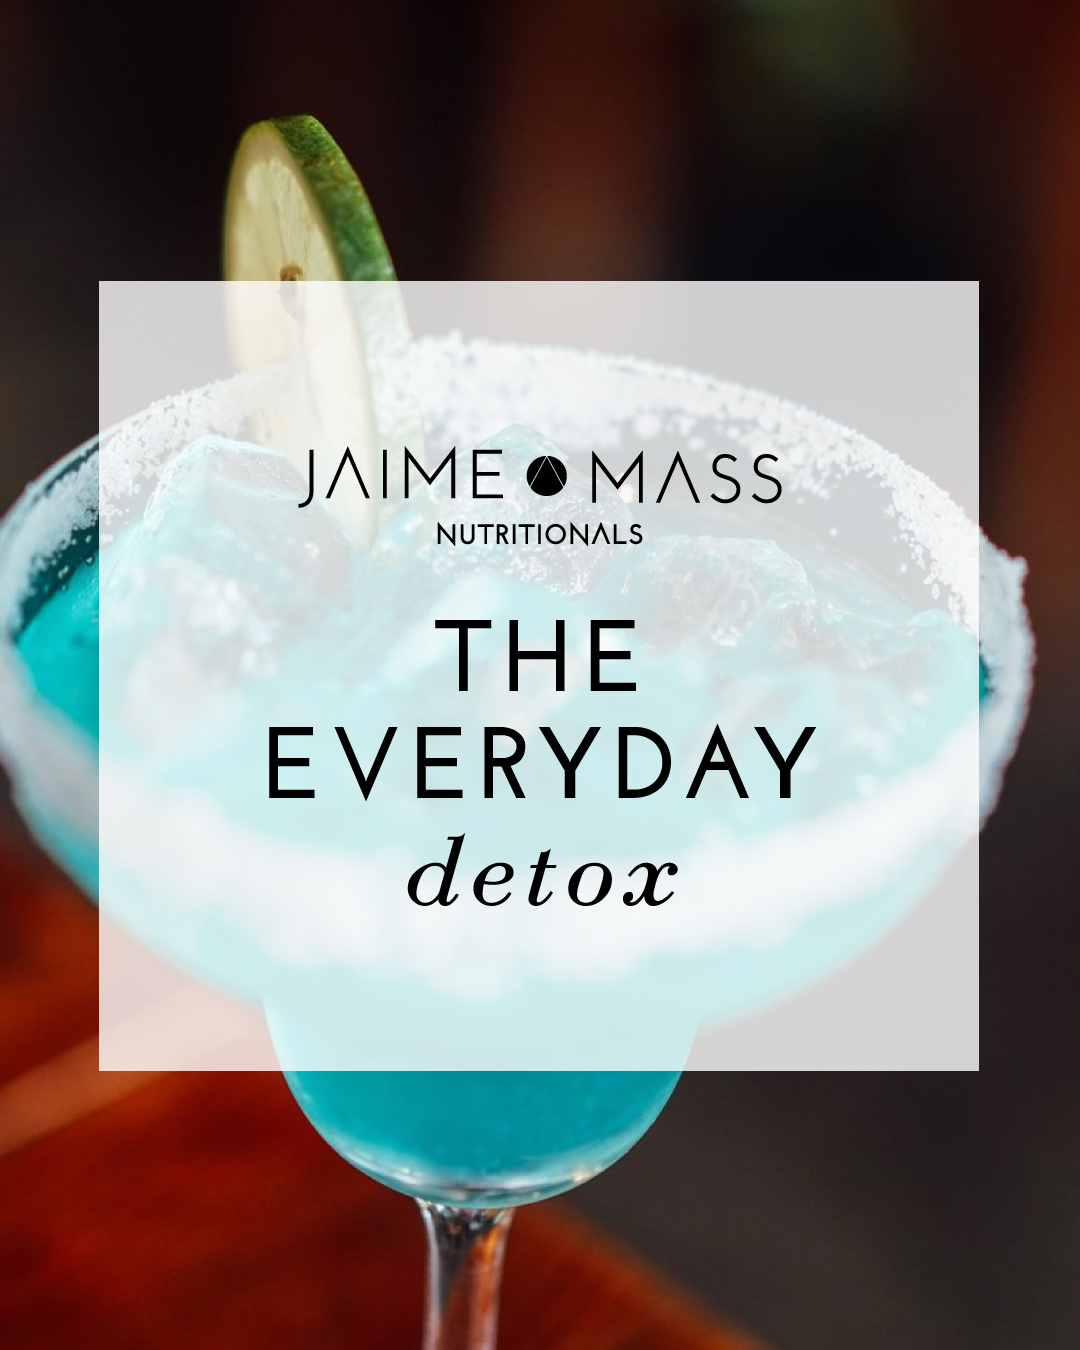 The Everyday Detox -- Jaime Mass Nutritionals